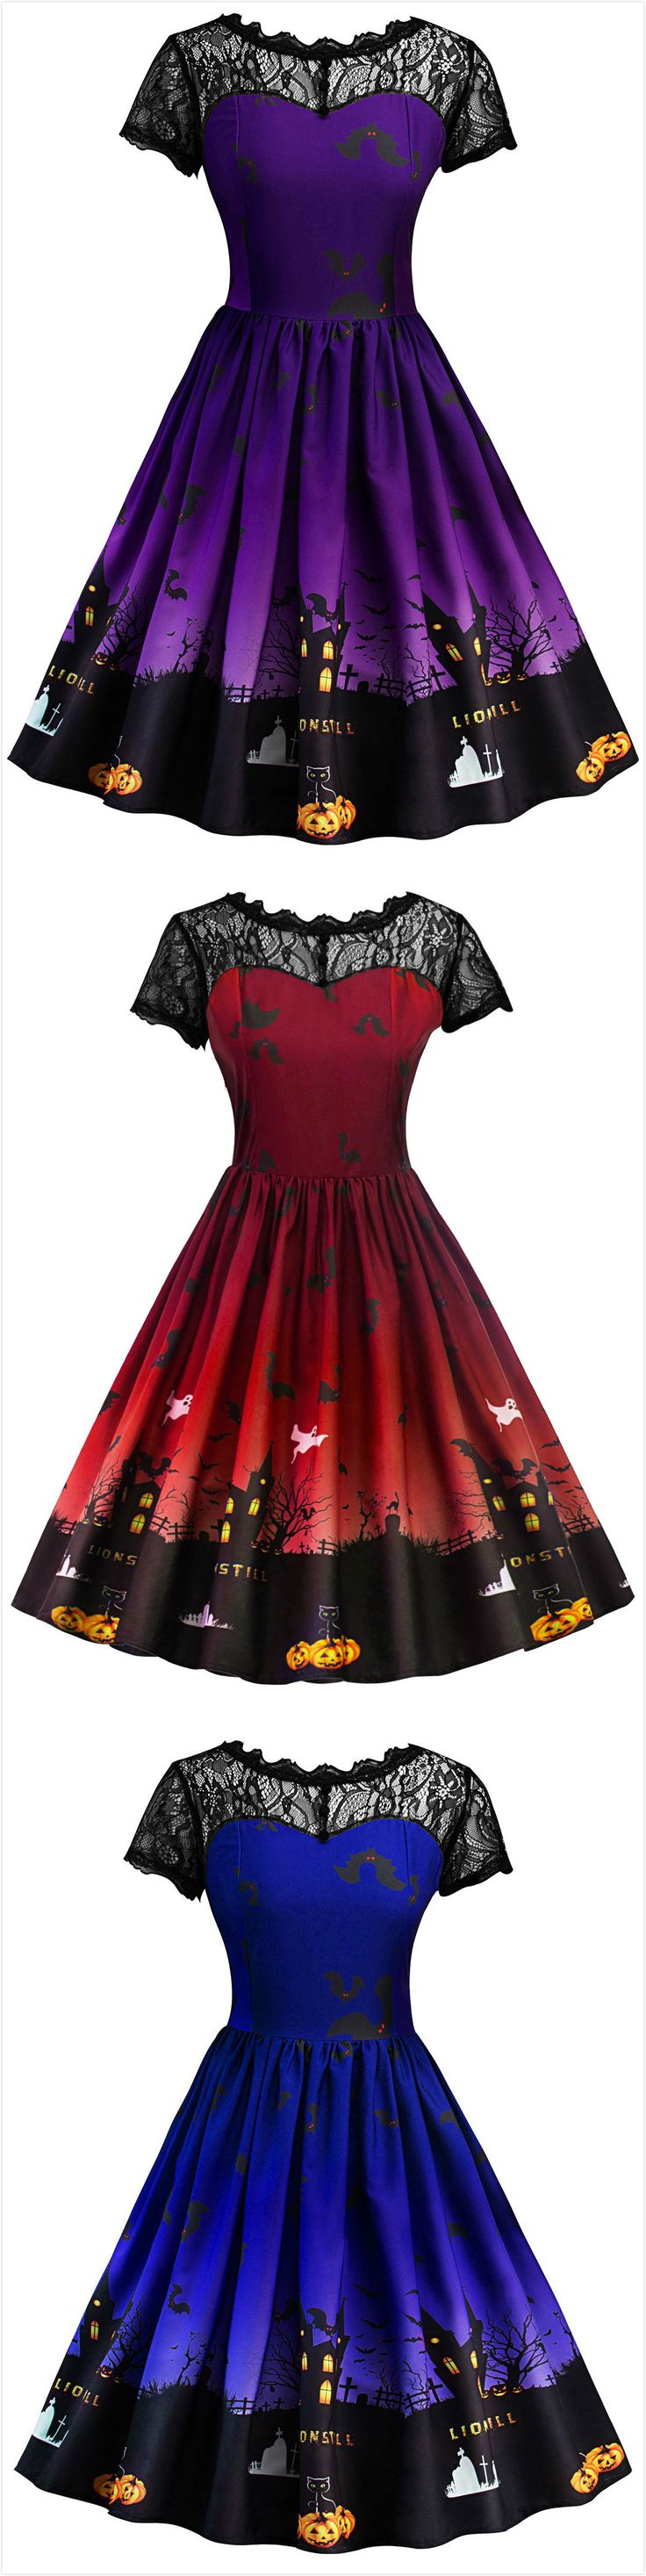 Halloween Vintage Lace Insert Pin Up Dress